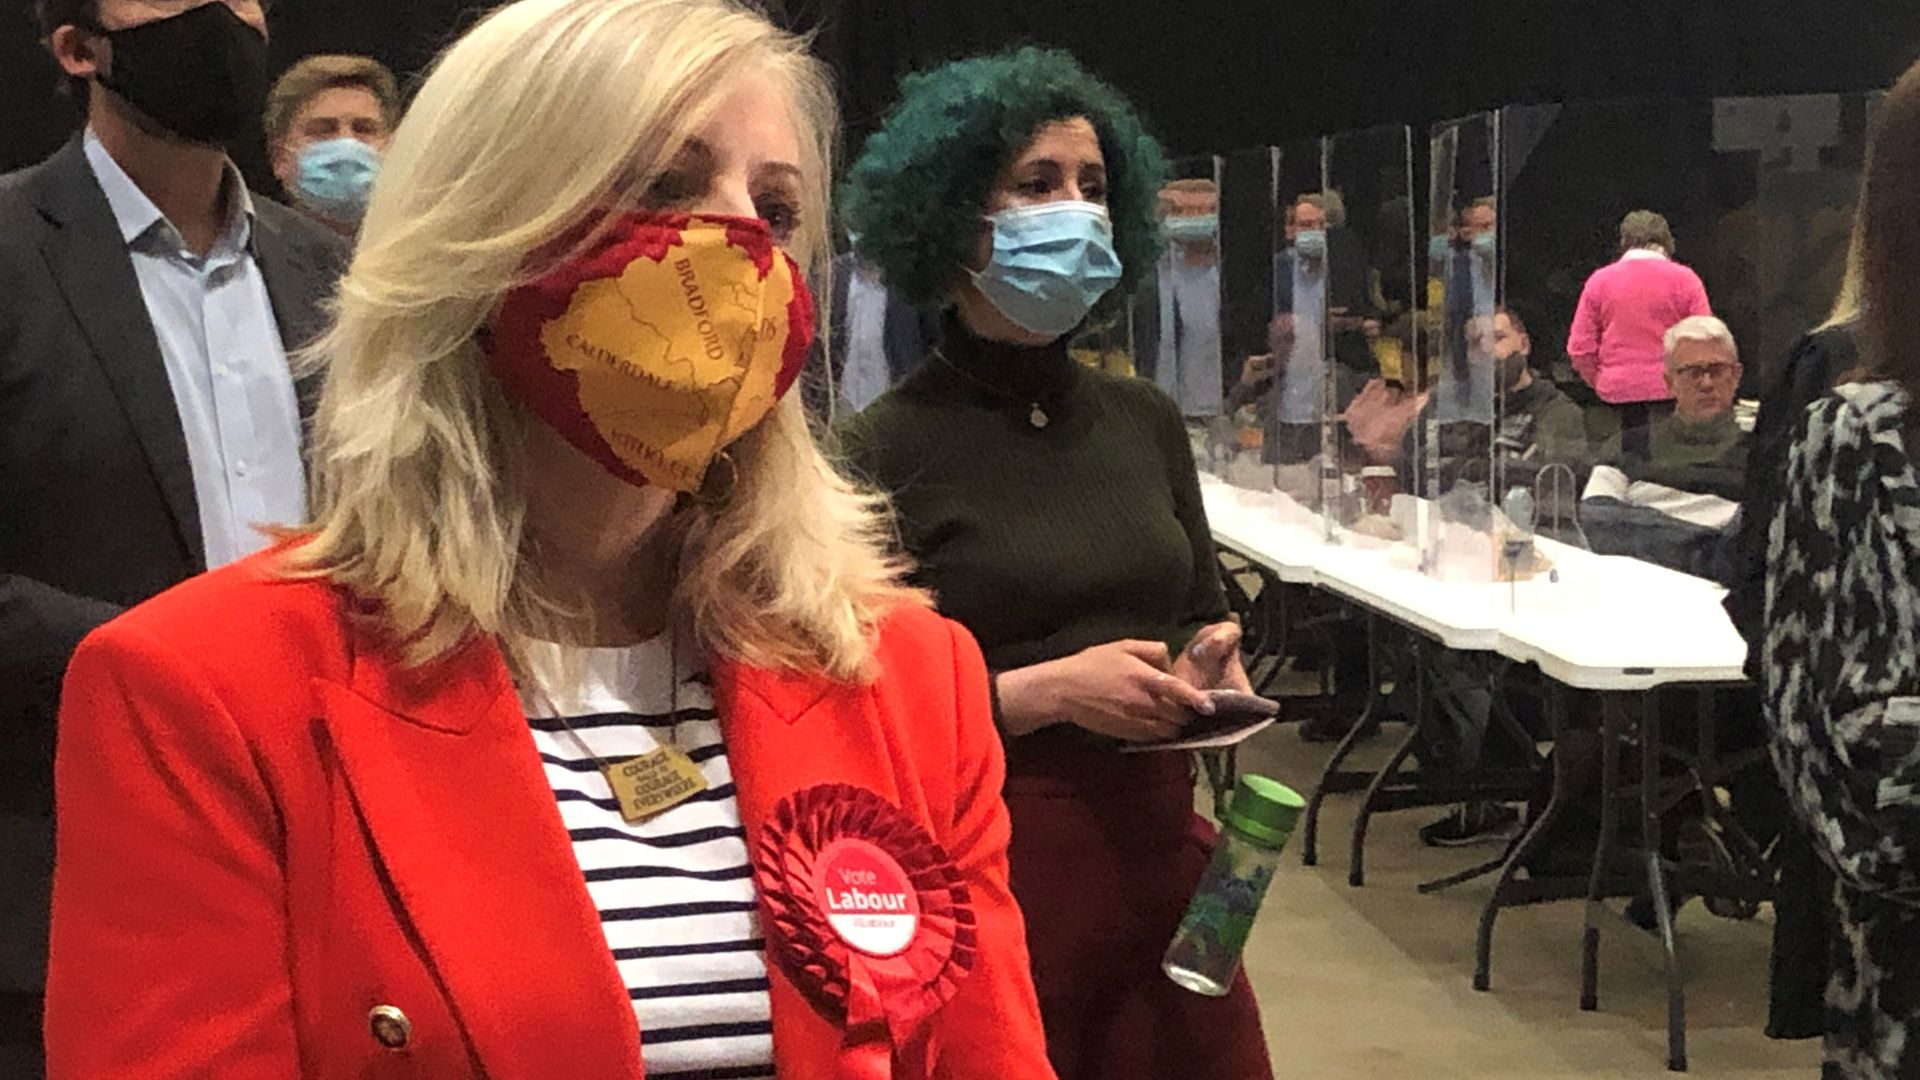 Labour's Tracy Brabin during the count for the West Yorkshire Mayoral election in Leeds - Credit: PA